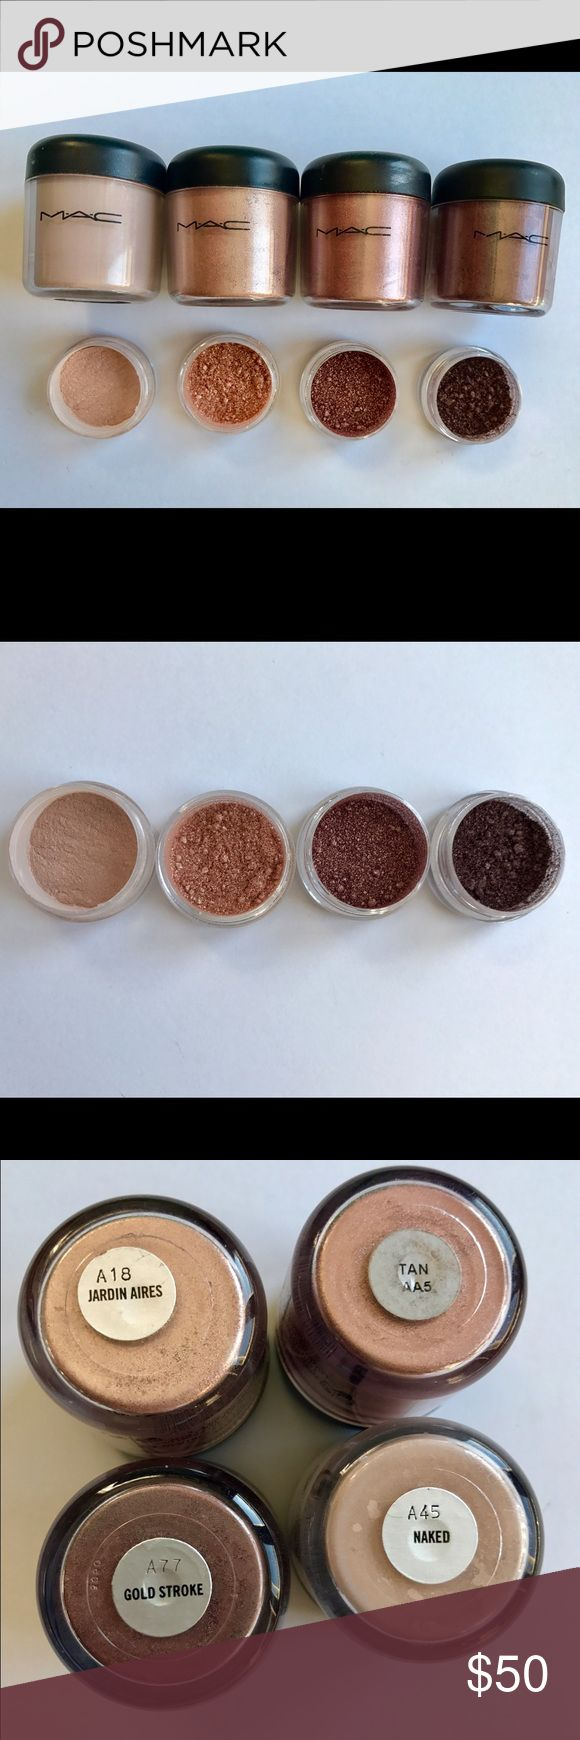 Super Rare MAC Pigment Sample Set (1/4 teaspoon) This MAC Pigment sample set includes 1/4 teaspoon of each of the following pigments: Naked, Jardin Aires, Tan, and Gold Stroke! This is a perfect way to try out Authentic MAC Pigments without spending a fortune on them. These Pigments are perfect for any occasion! Get them while they last! SHIPS THE NEXT DAY! Pigments come in 3g BPA Free jars! MAC Cosmetics Makeup Eyeshadow